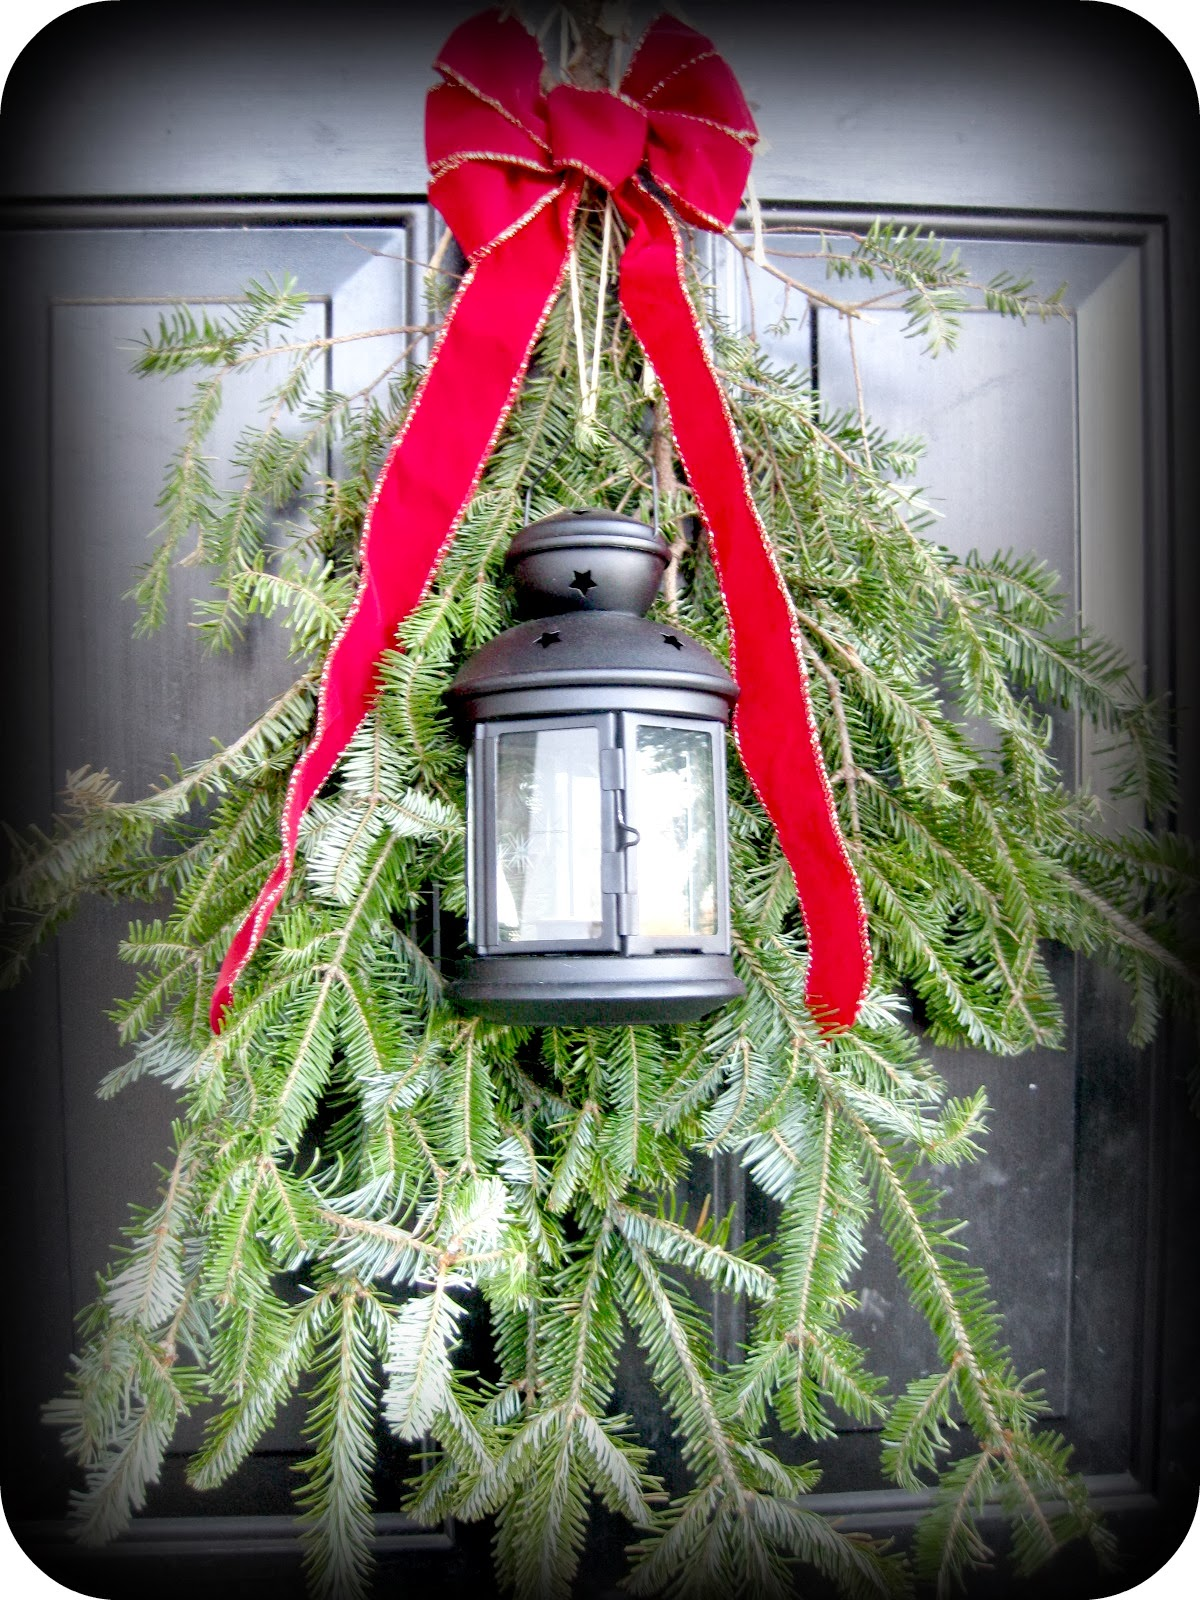 How to decorate your yard for christmas on a budget - Christmas Decor For Porch Light So Simple Why Haven T I Thought Of Doing This Exterior Decor Pinterest Thanksgiving Front Doors And Christmas